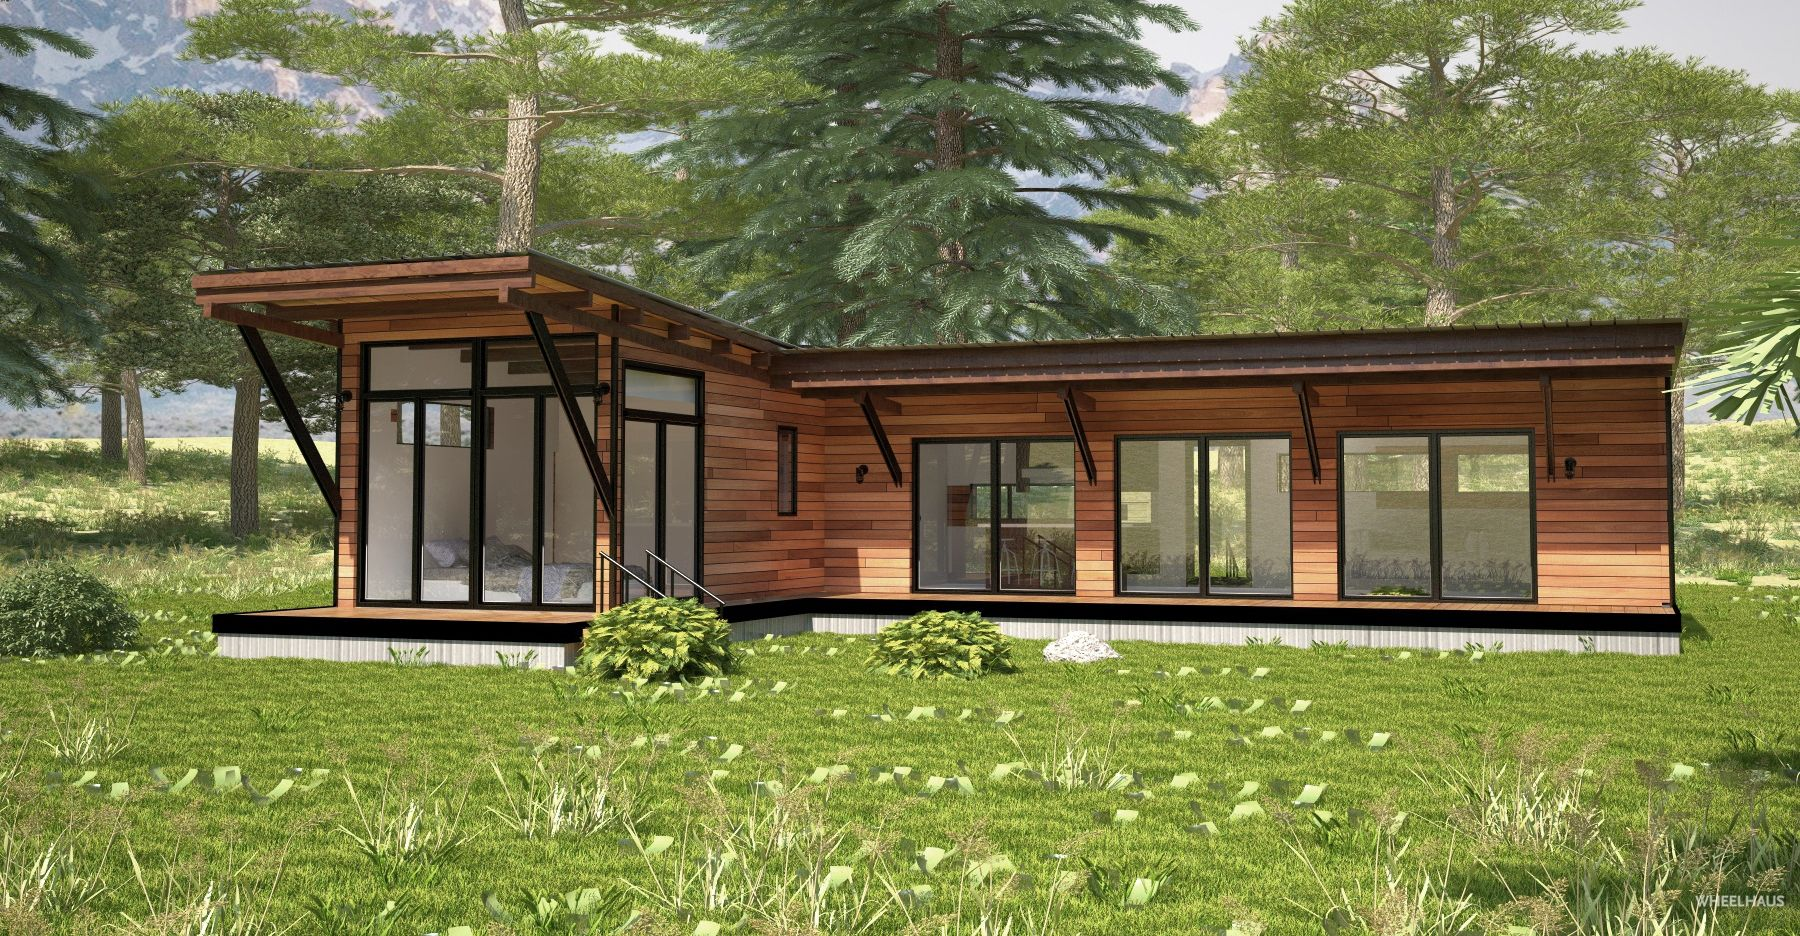 At 1 000 Square Feet The Hitch Haus Is A Double Unit Modular Home